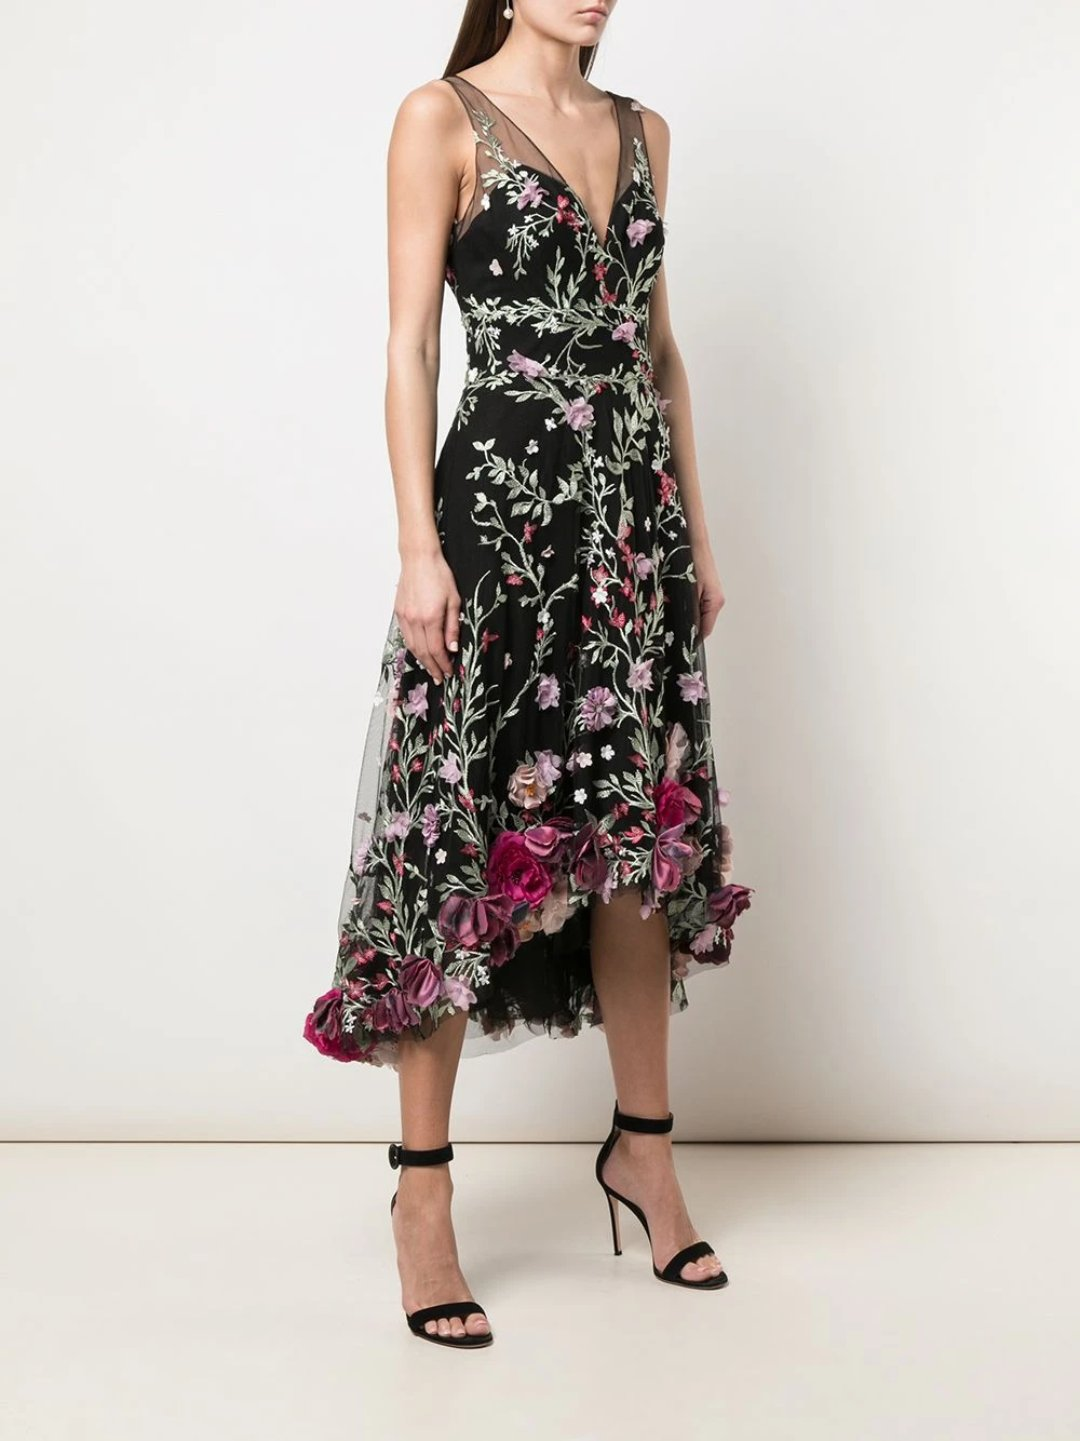 3D Floral Embroidered Hi-Low Cocktail